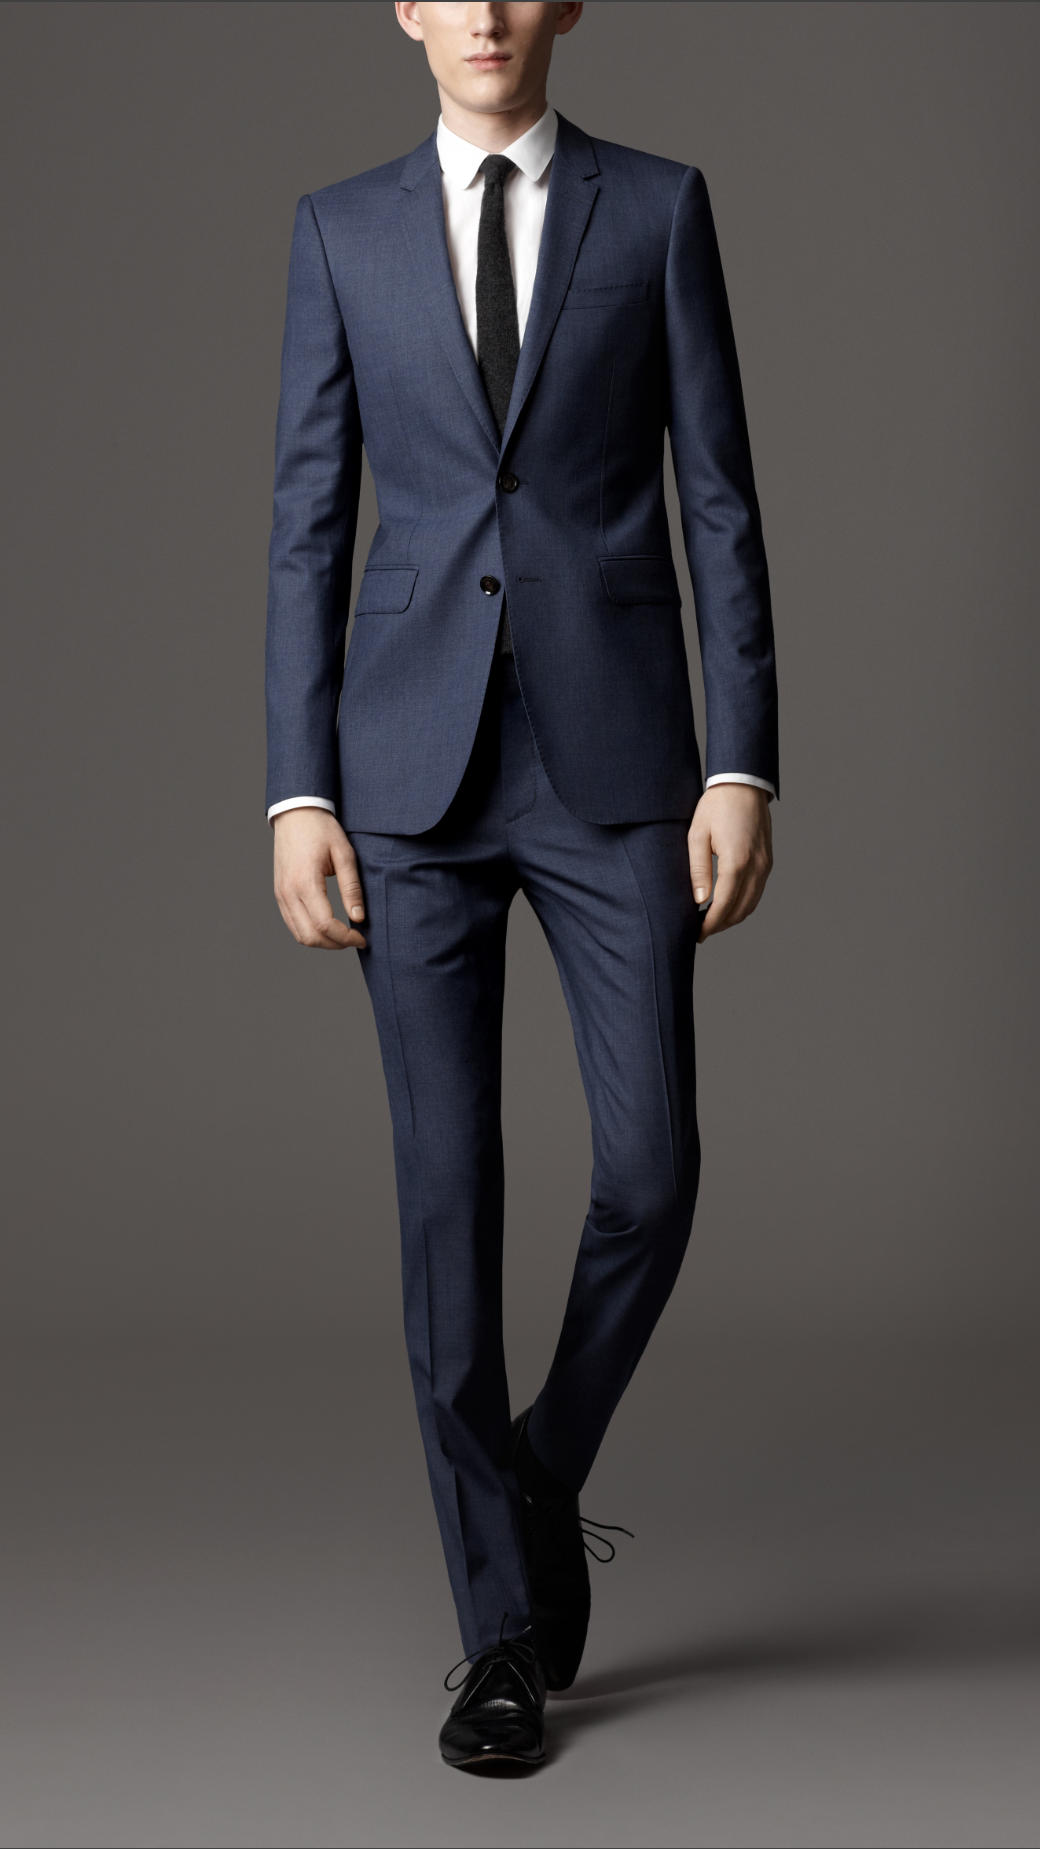 Aug 02,  · Suit Slim Aeron Fit Hamen Virgin Wool Though all your search terms are included in the results, they may not be connected together in the way you want. For example, this search: college students test anxiety is translated to: college AND students AND test AND anxiety.